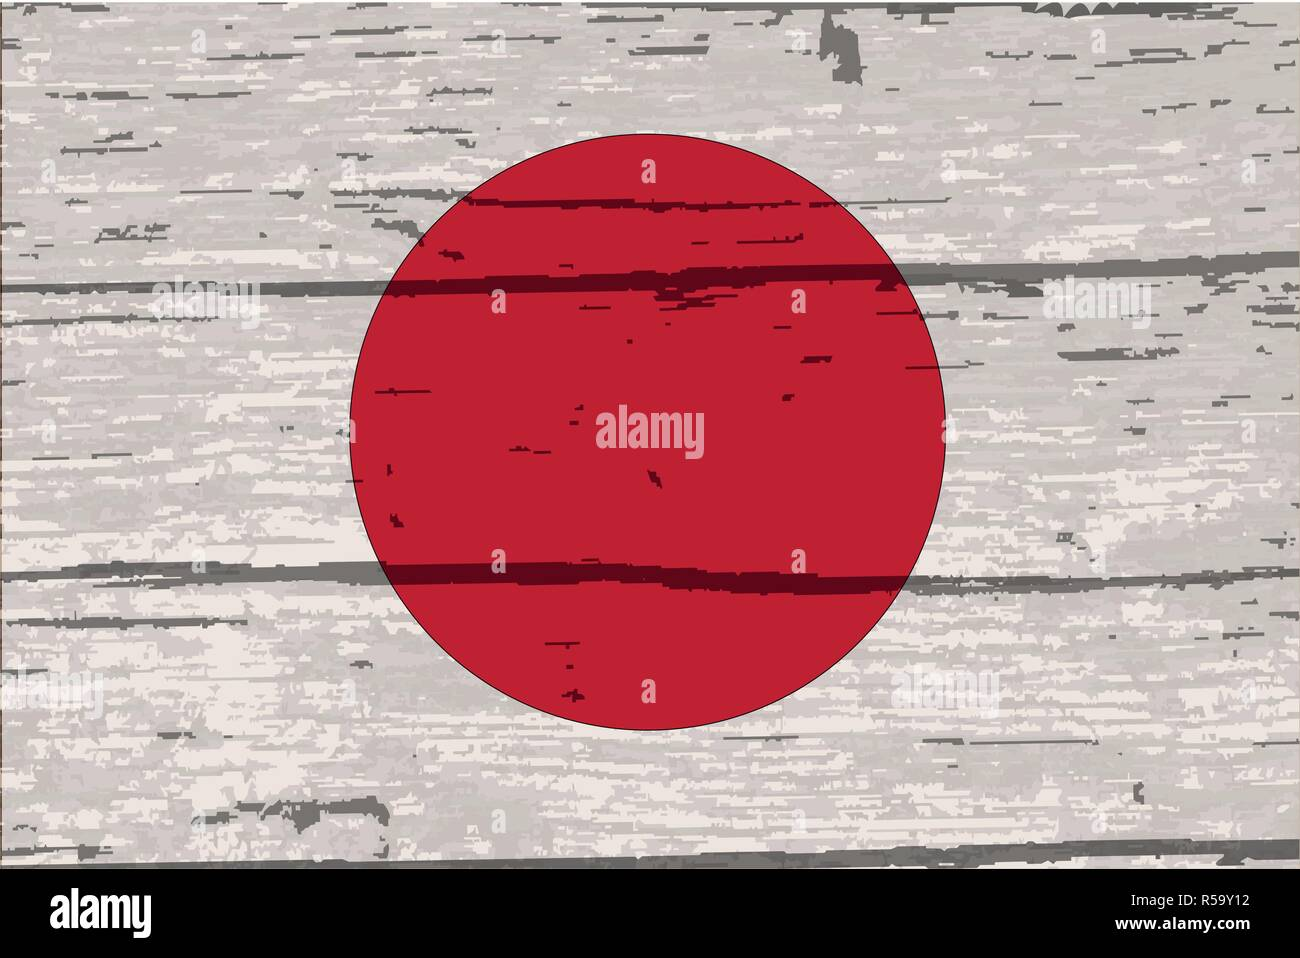 Japanes rising sun flag on driftwood timber background with a white paint overlay - Stock Image